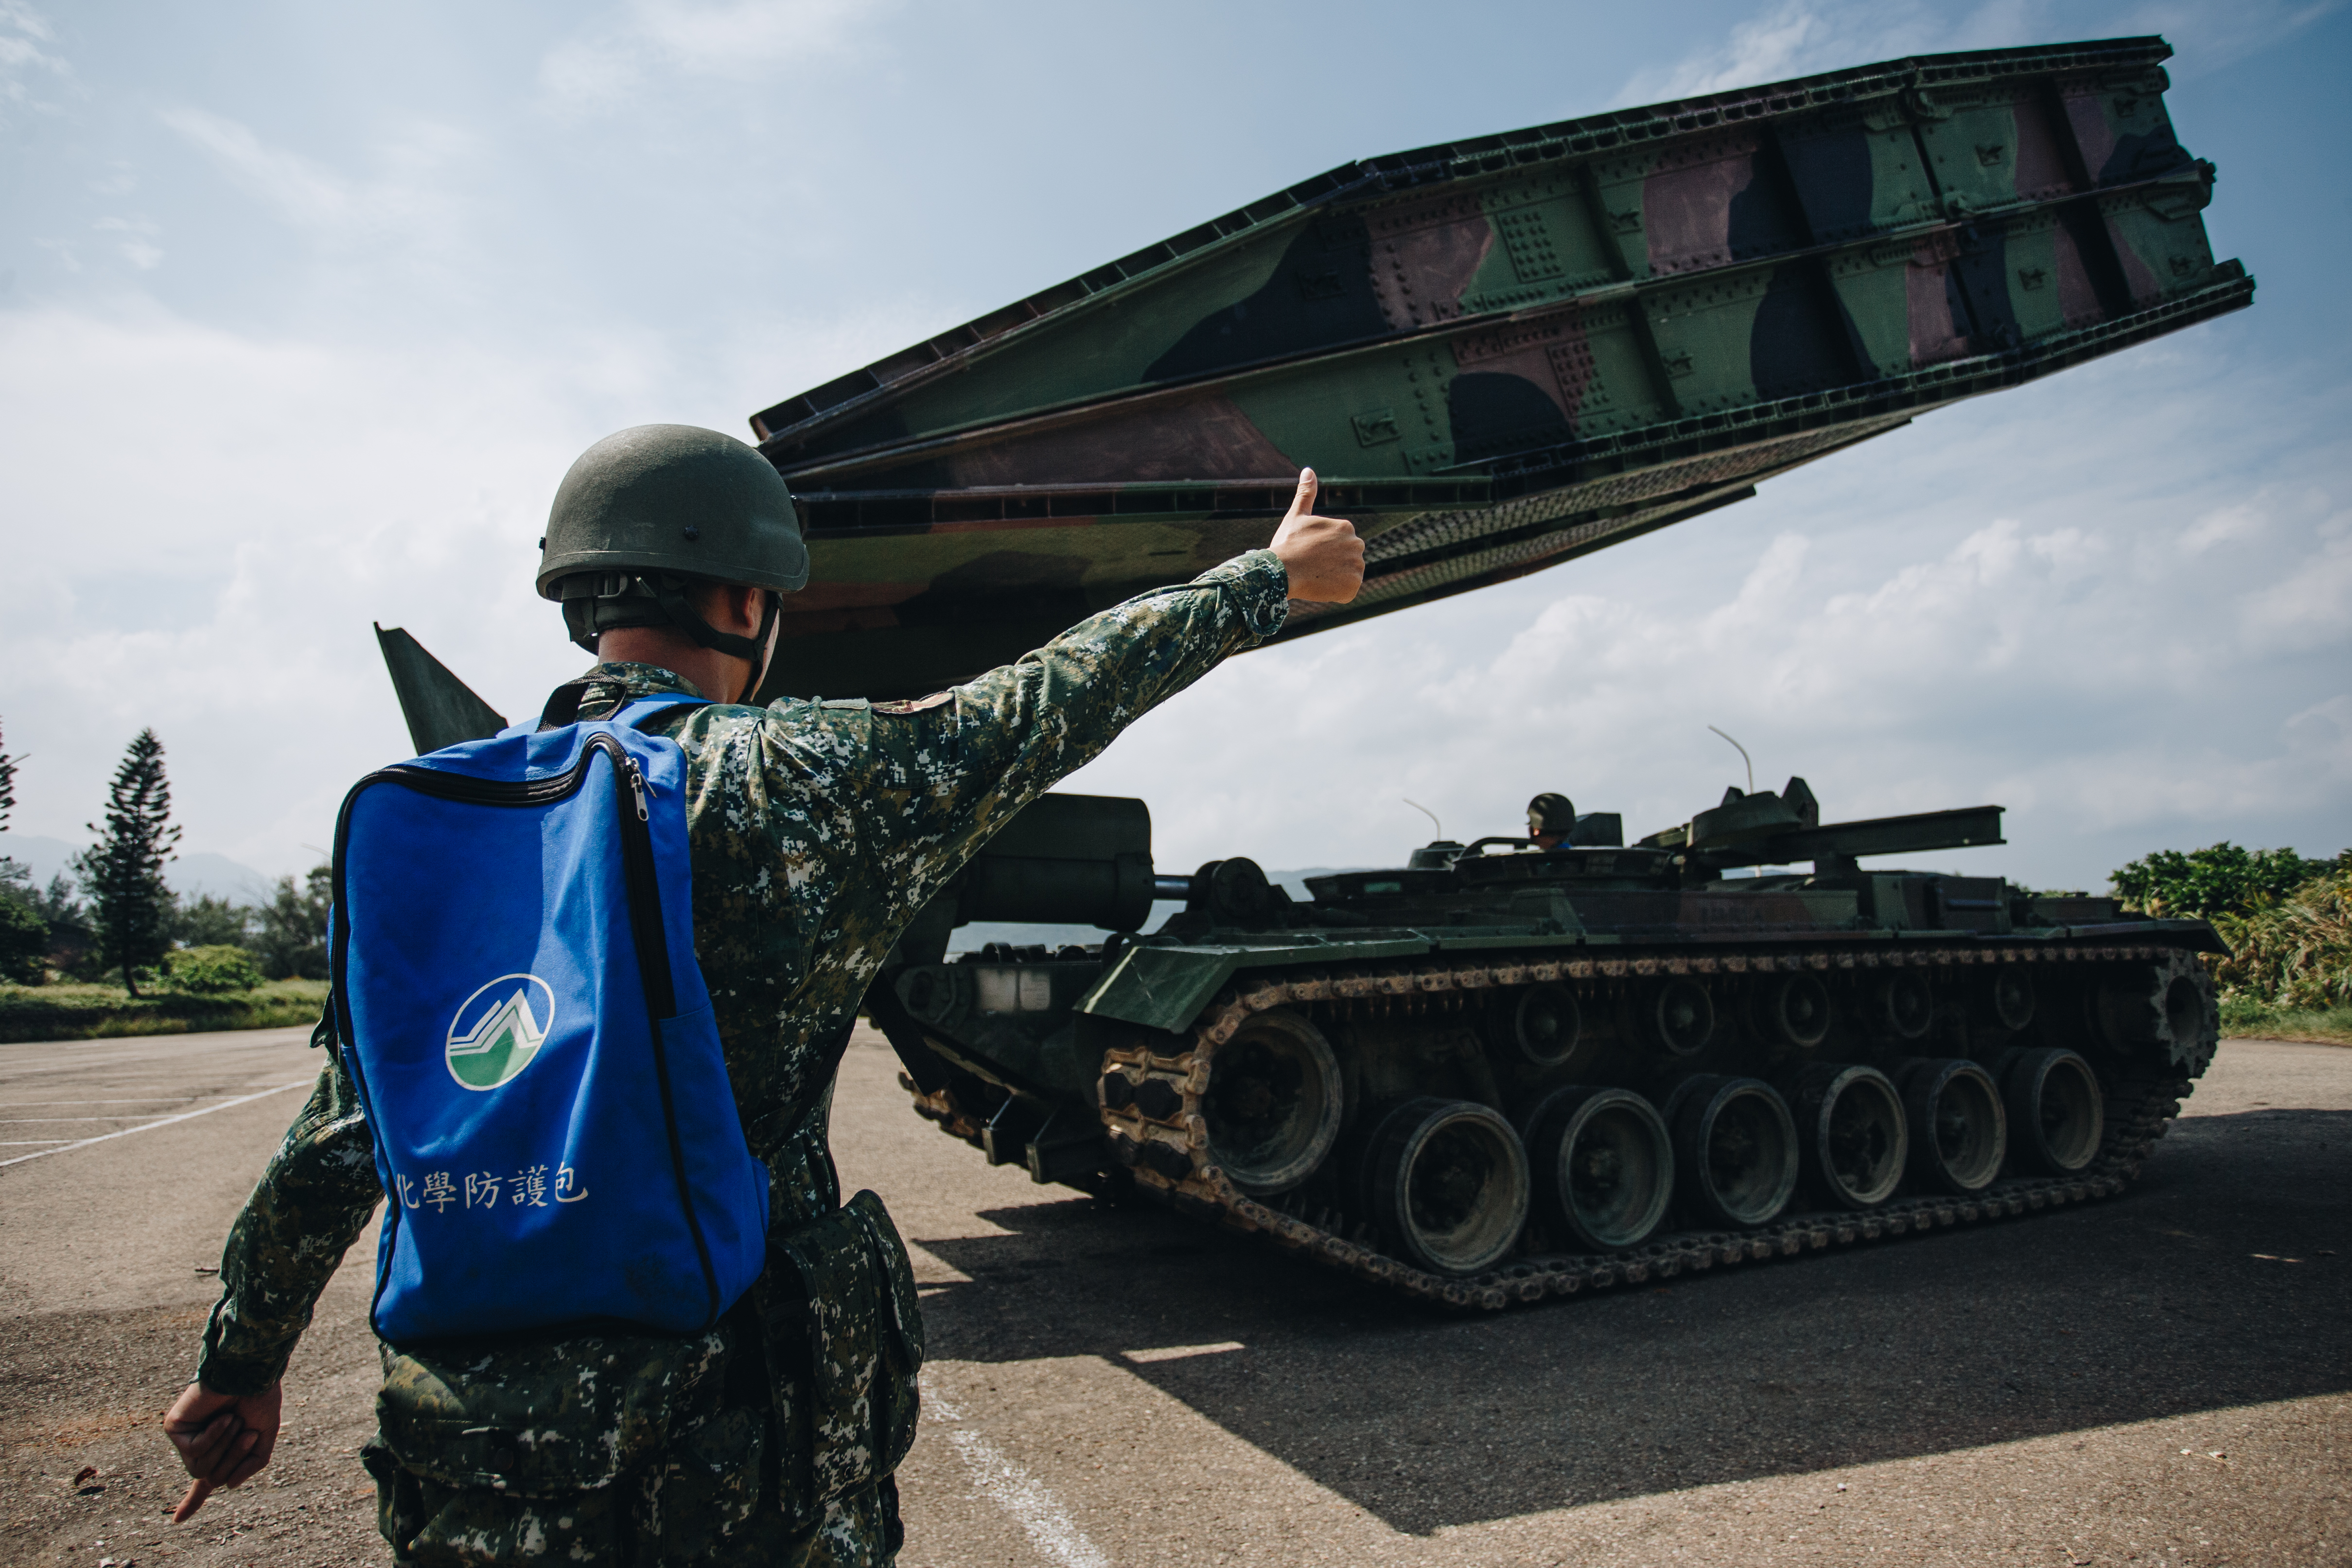 ROC Armed Forces Showcases Responding Capabilities in Nuclear Security 26 Exercise